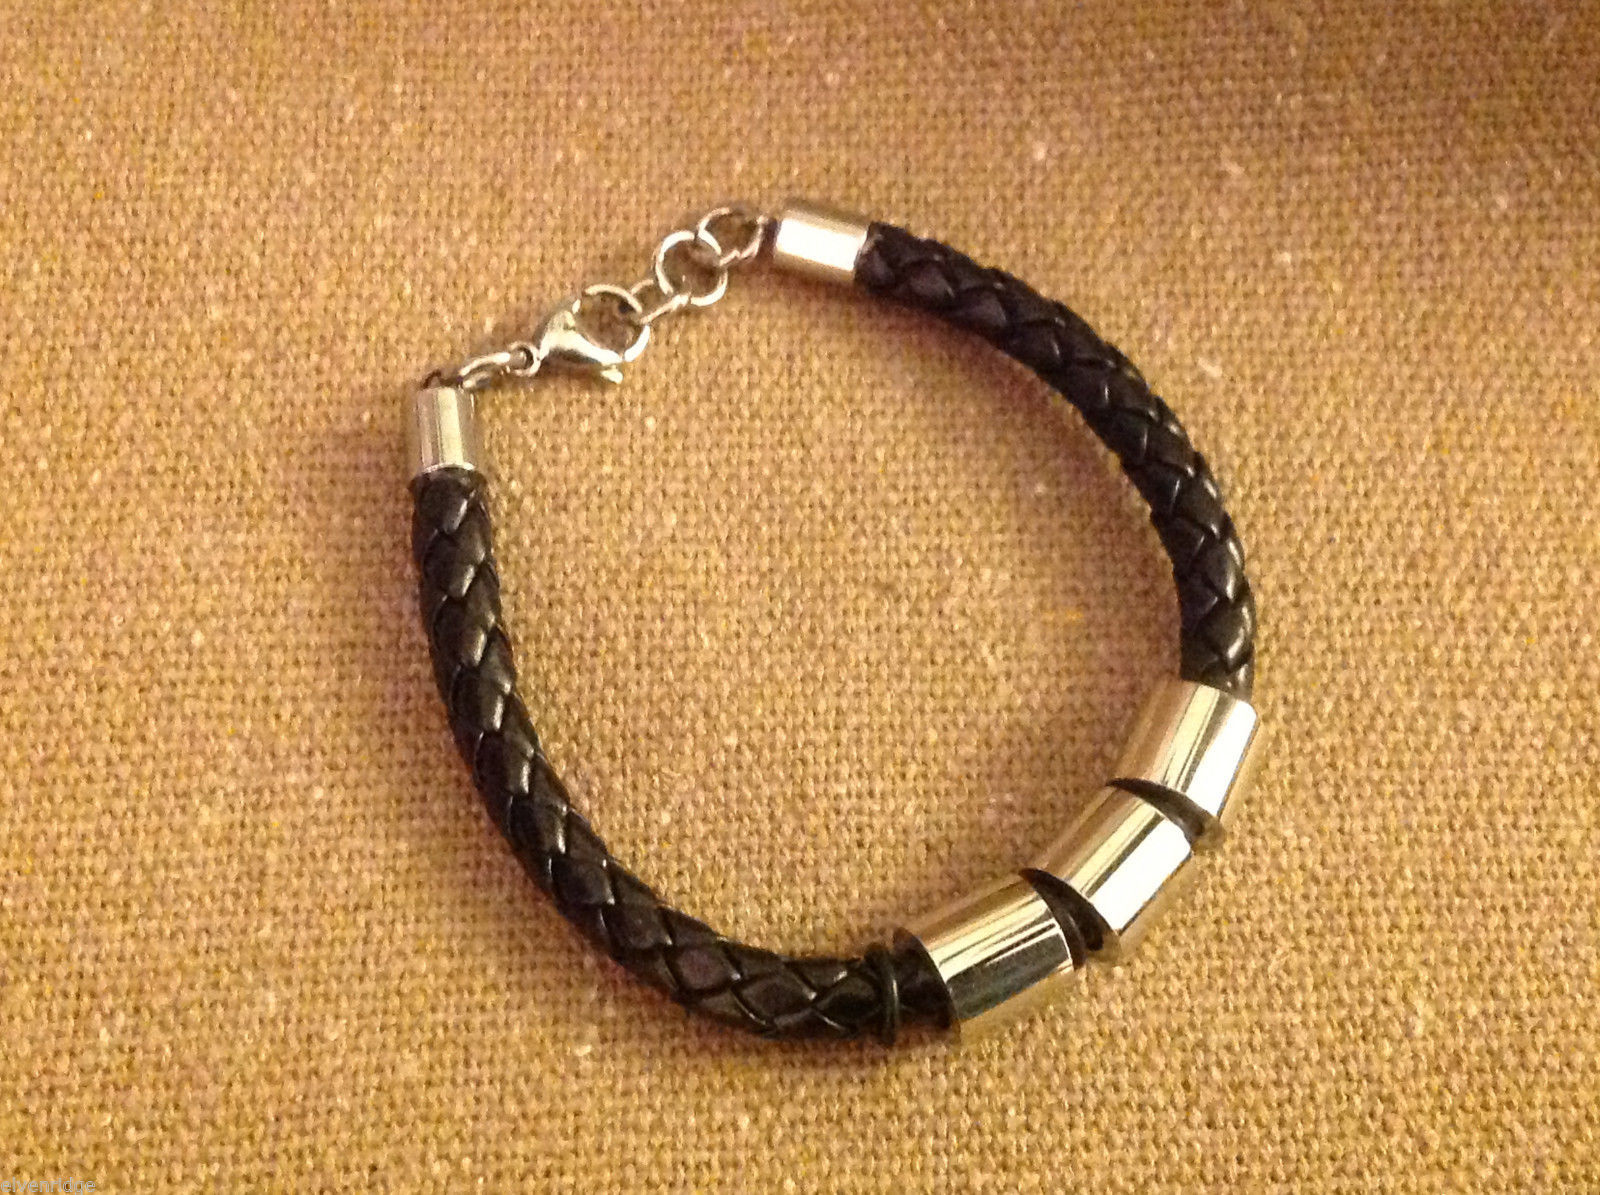 Smooth leather woven bracelet with titanium plated beads and lobster closure